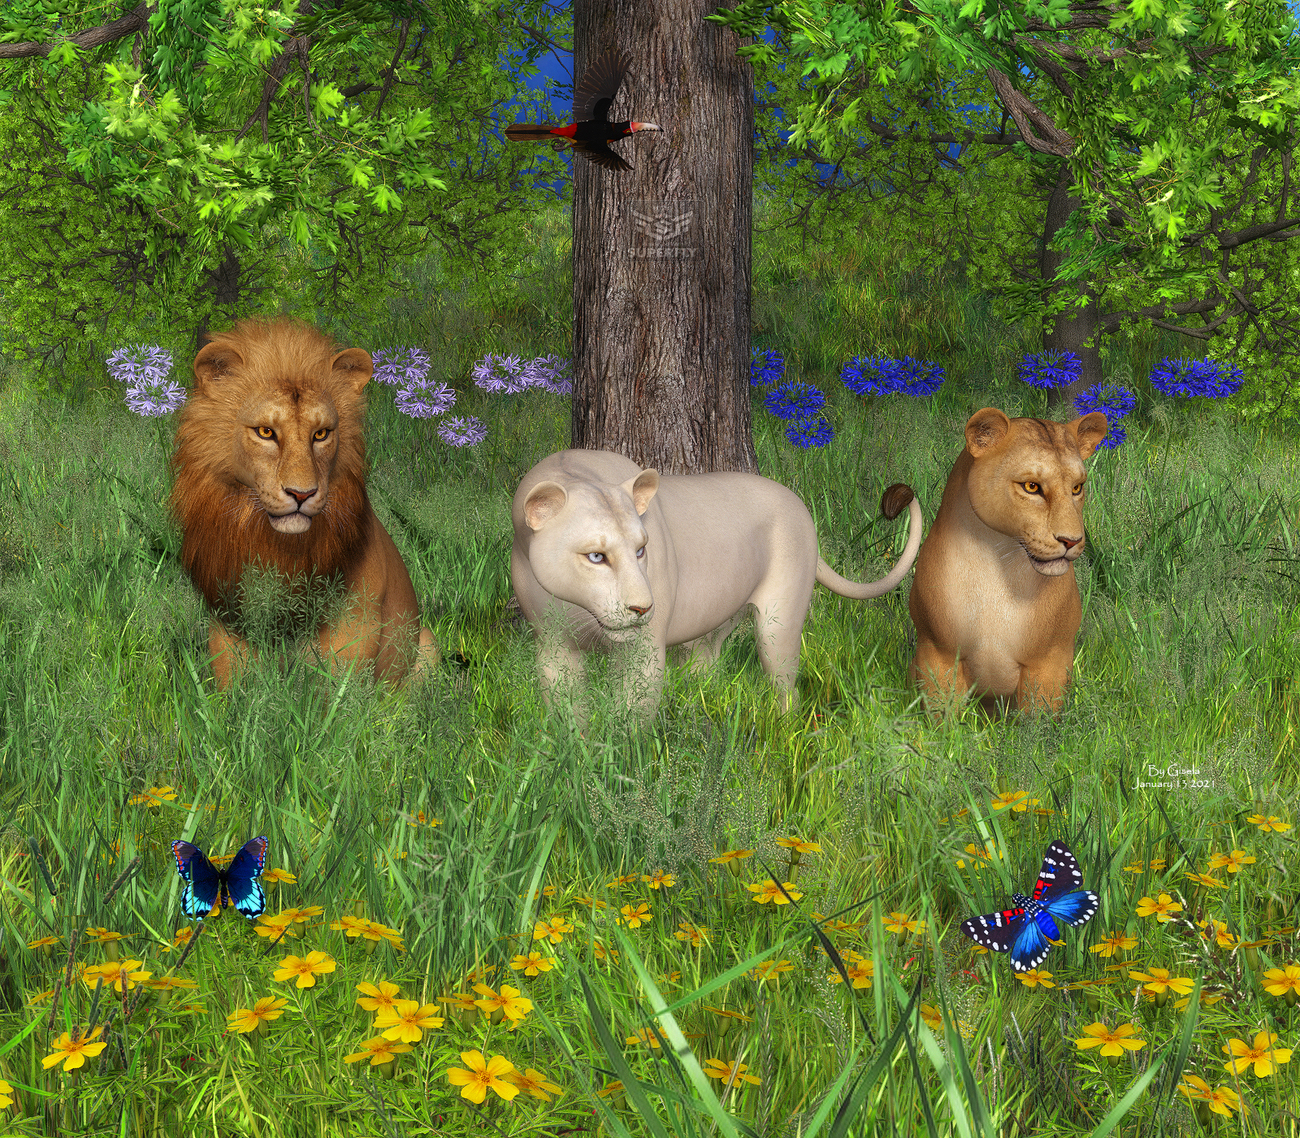 Lions by Gisela